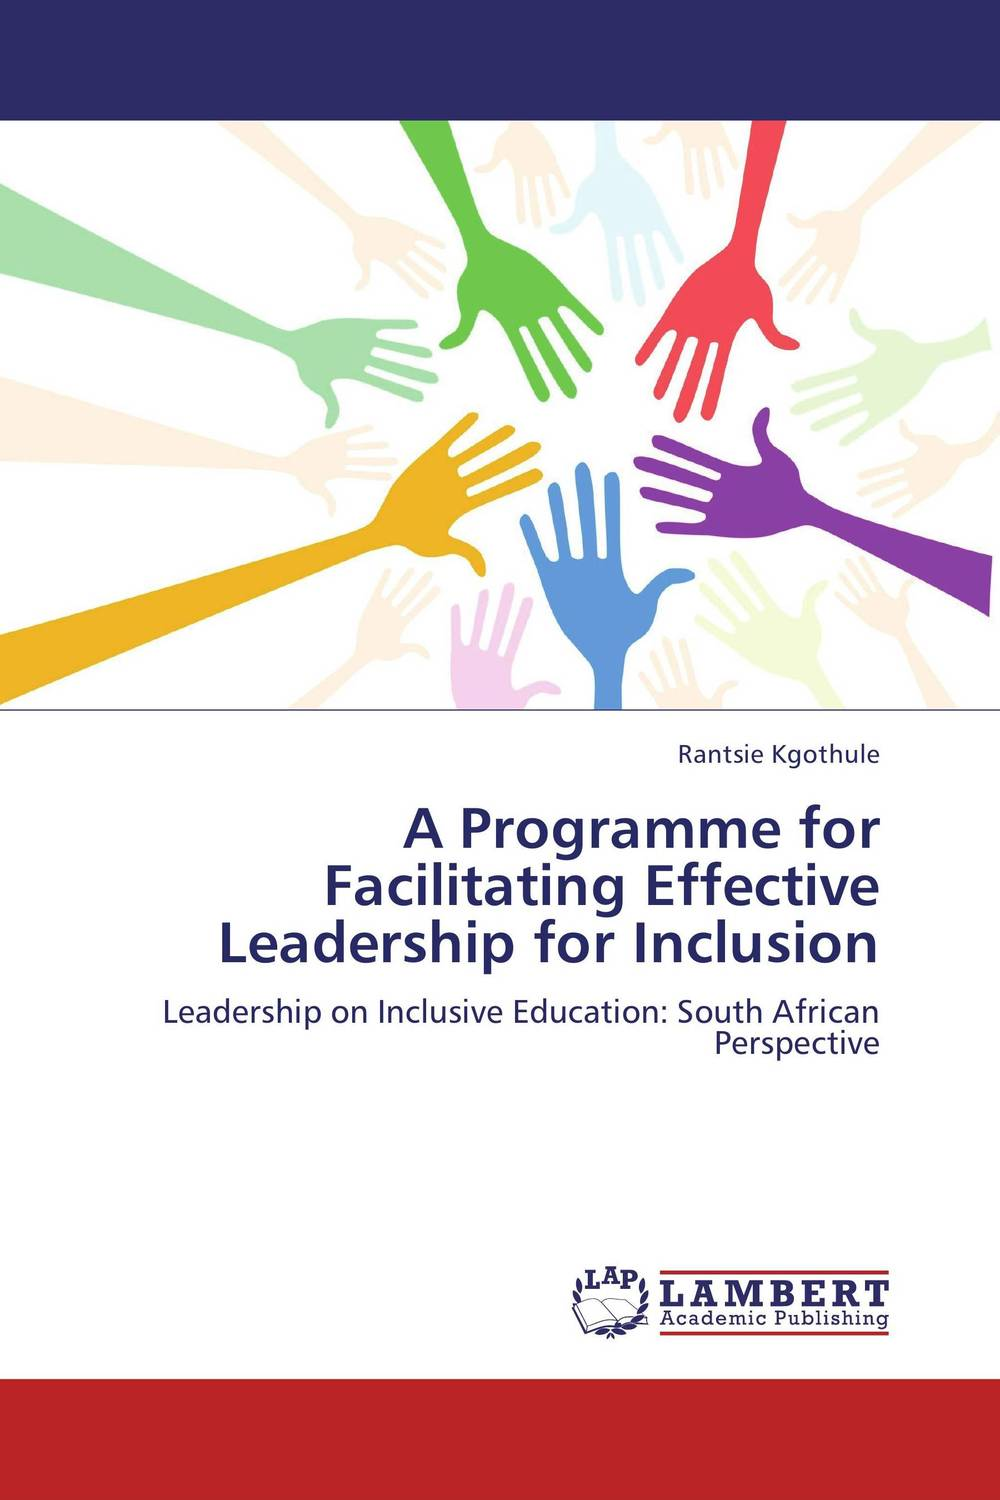 A Programme for Facilitating Effective Leadership for Inclusion shahzeb anwar and zeeshan abbas awan effective green management